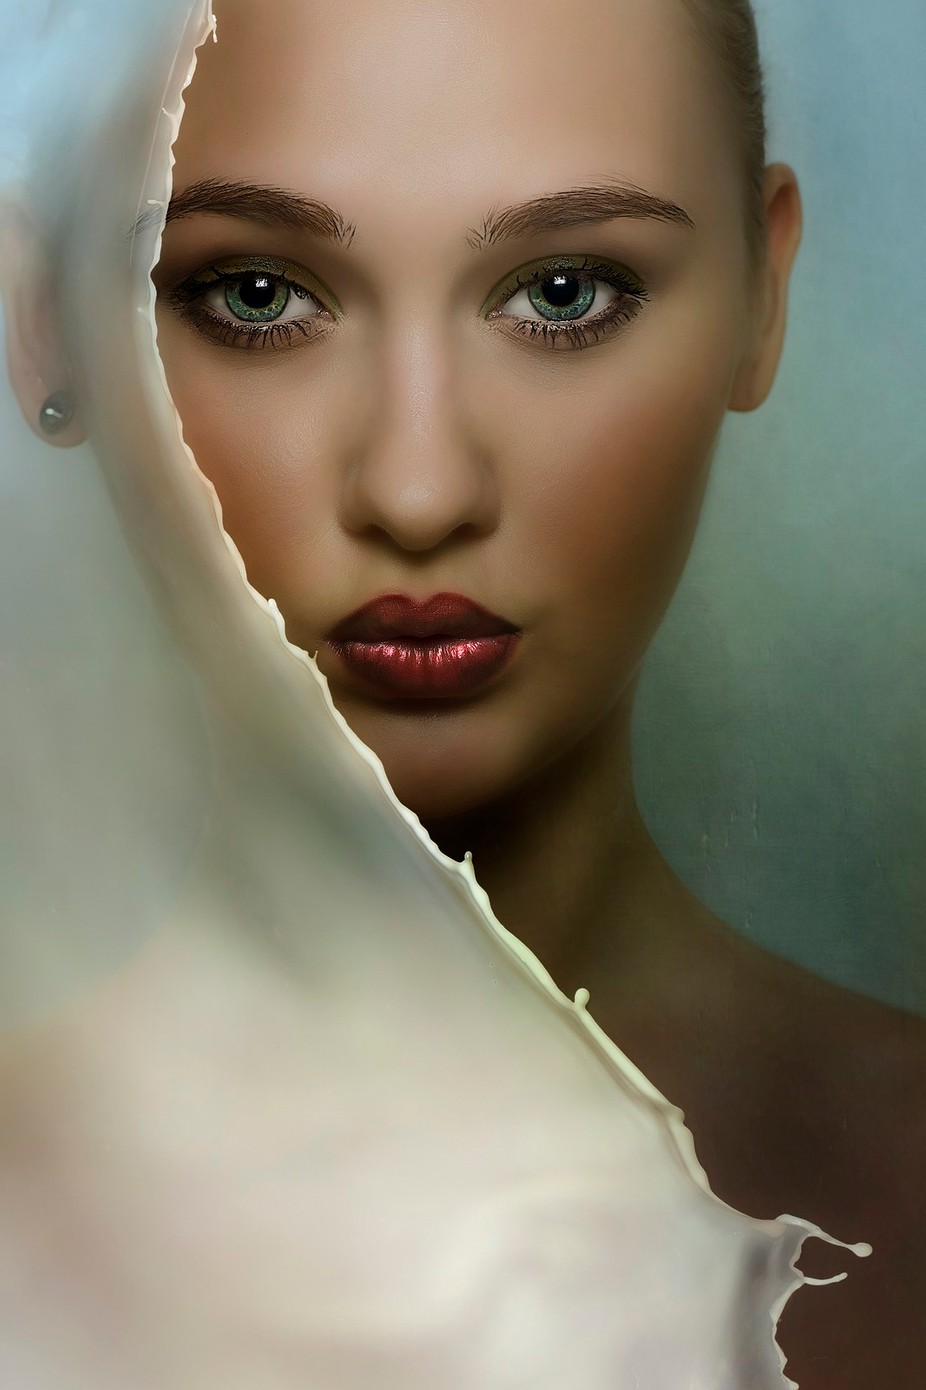 Susi by WolfgangPichler - The Magic Of Editing Photo Contest